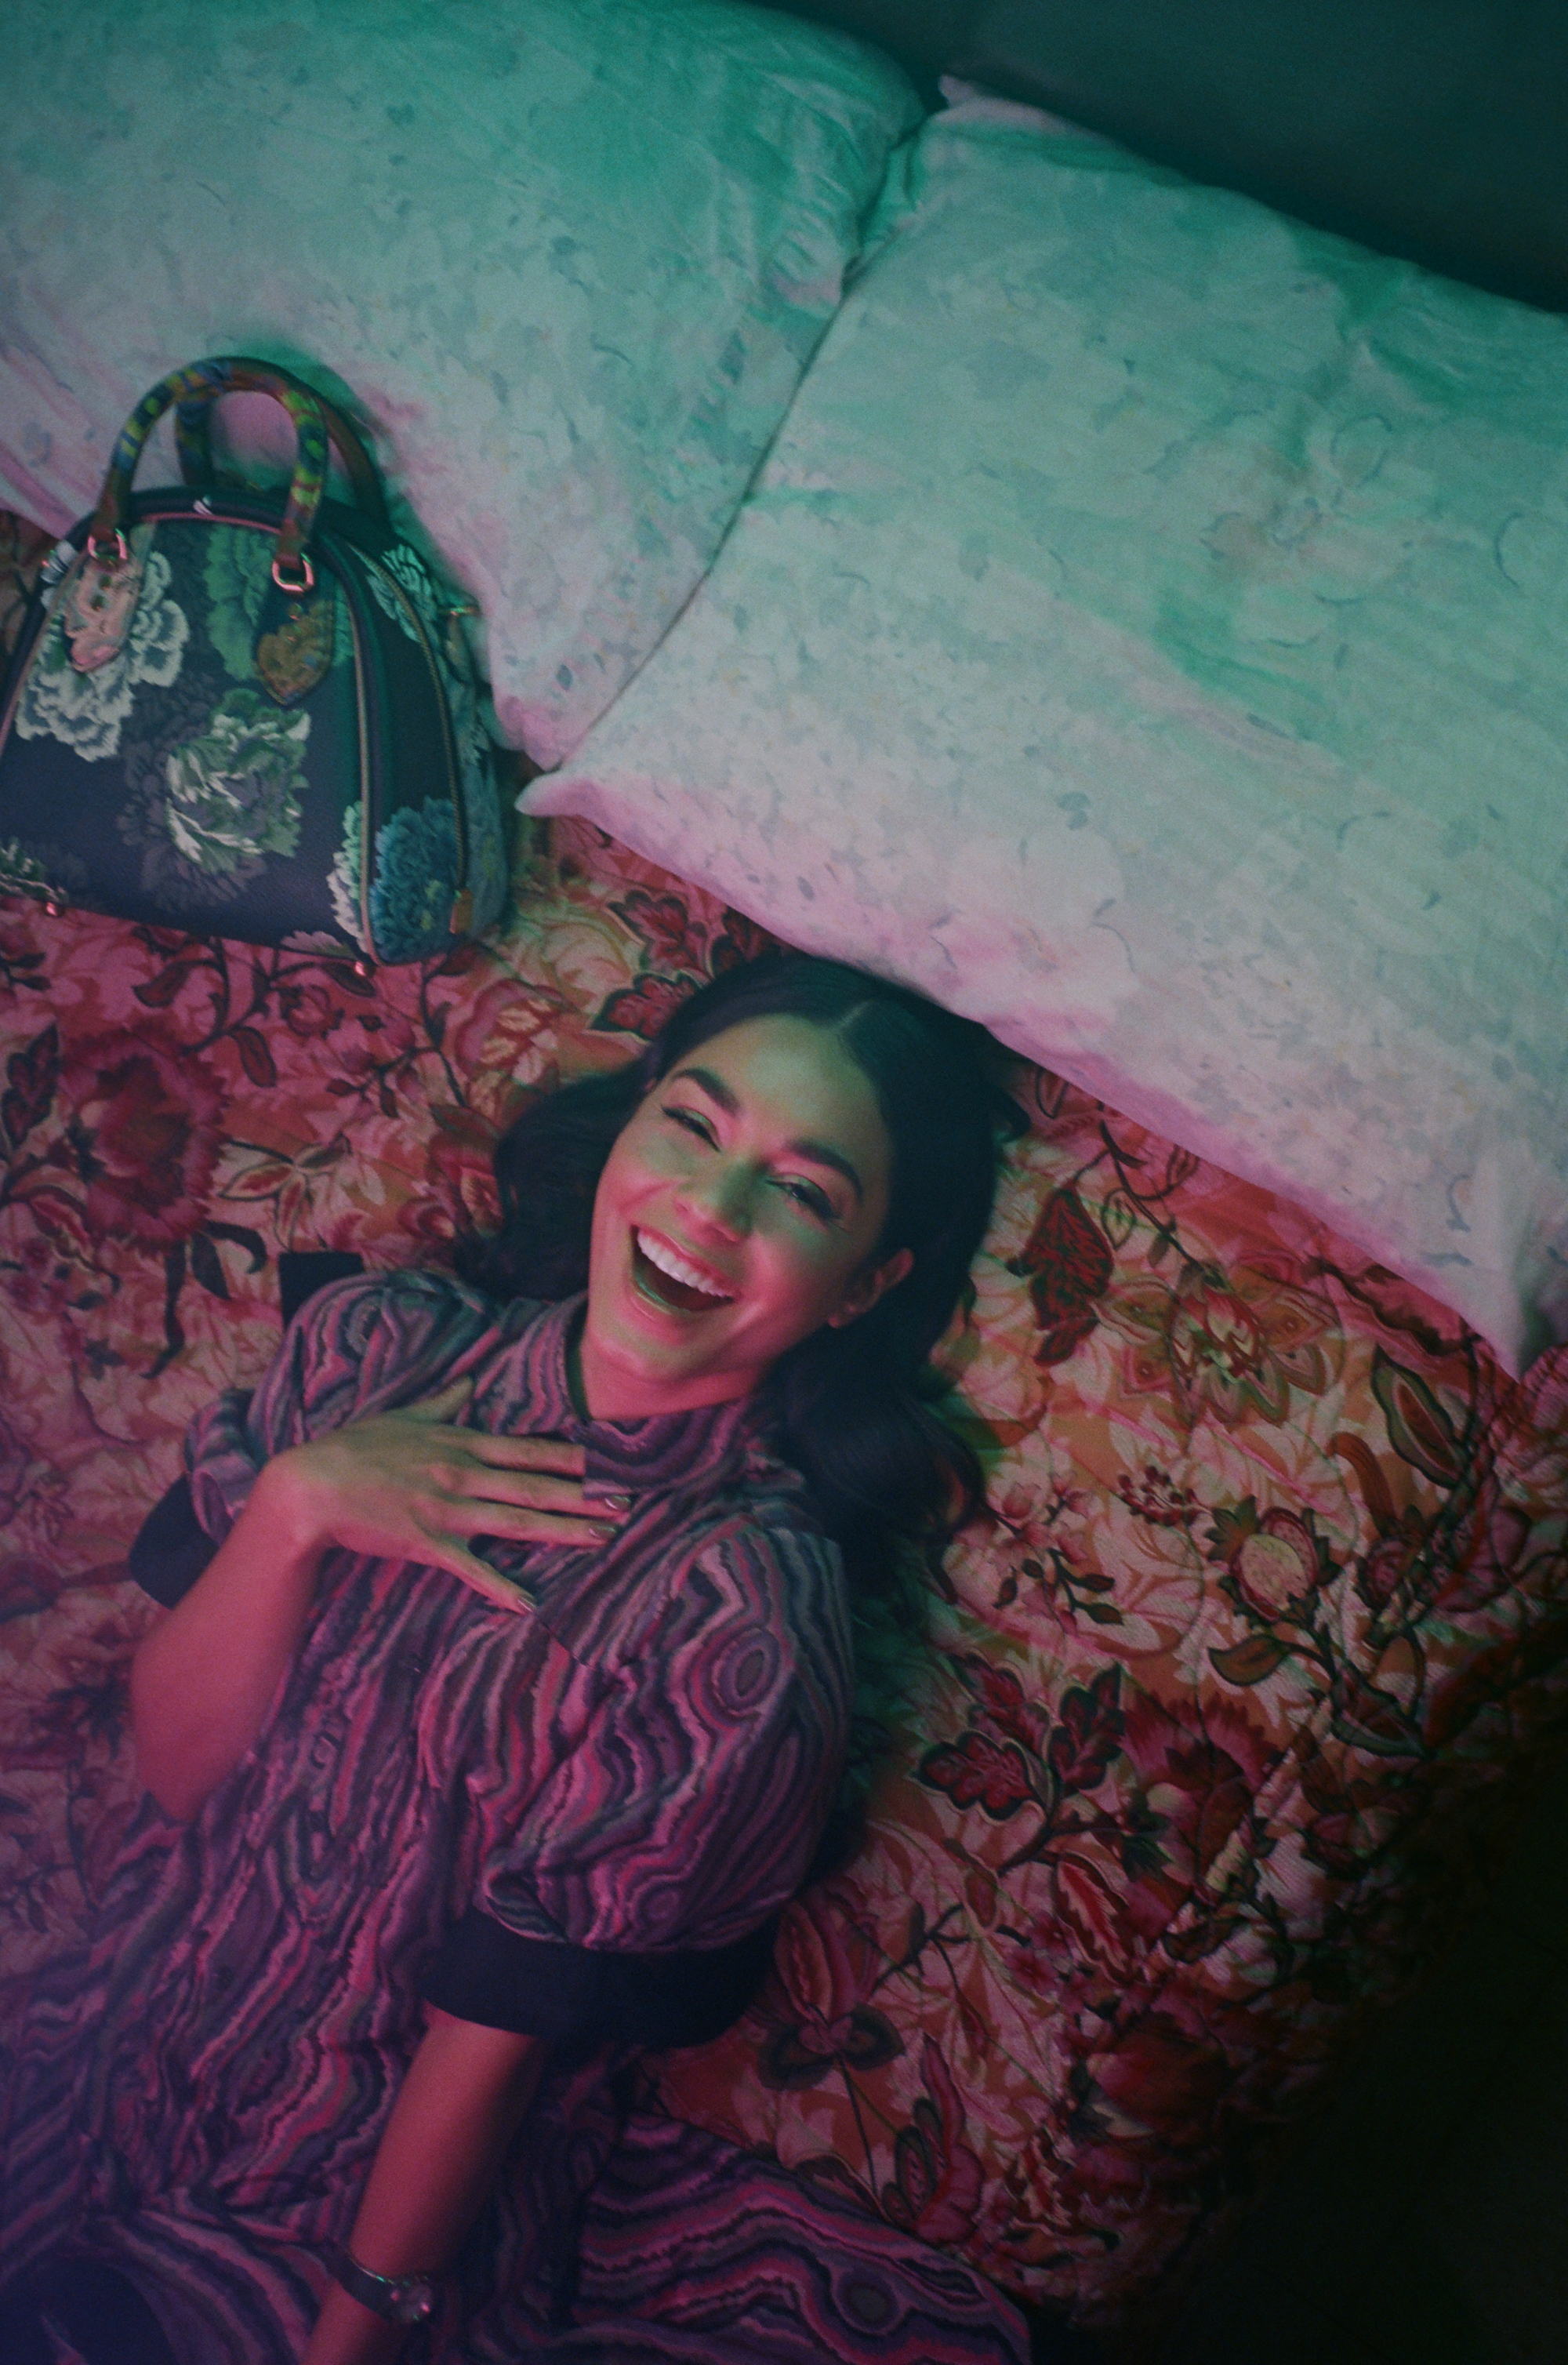 Vanessa Hudgens Omega cover interview in Sumer 19 issue of Wonderland lying in bed